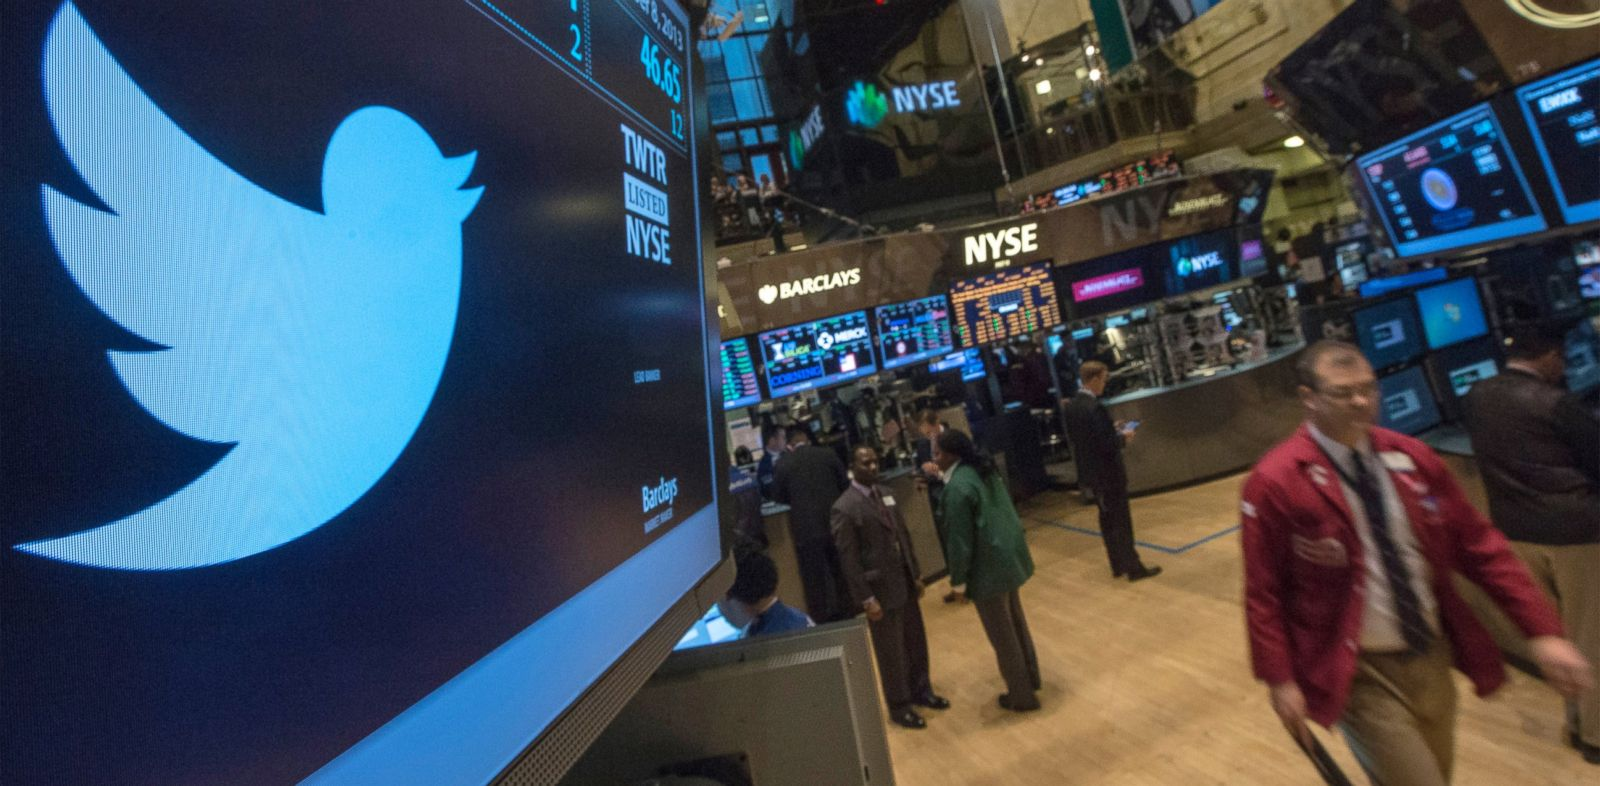 PHOTO: The Twitter logo is displayed on the floor of the New York Stock Exchange, Nov. 8, 2013.